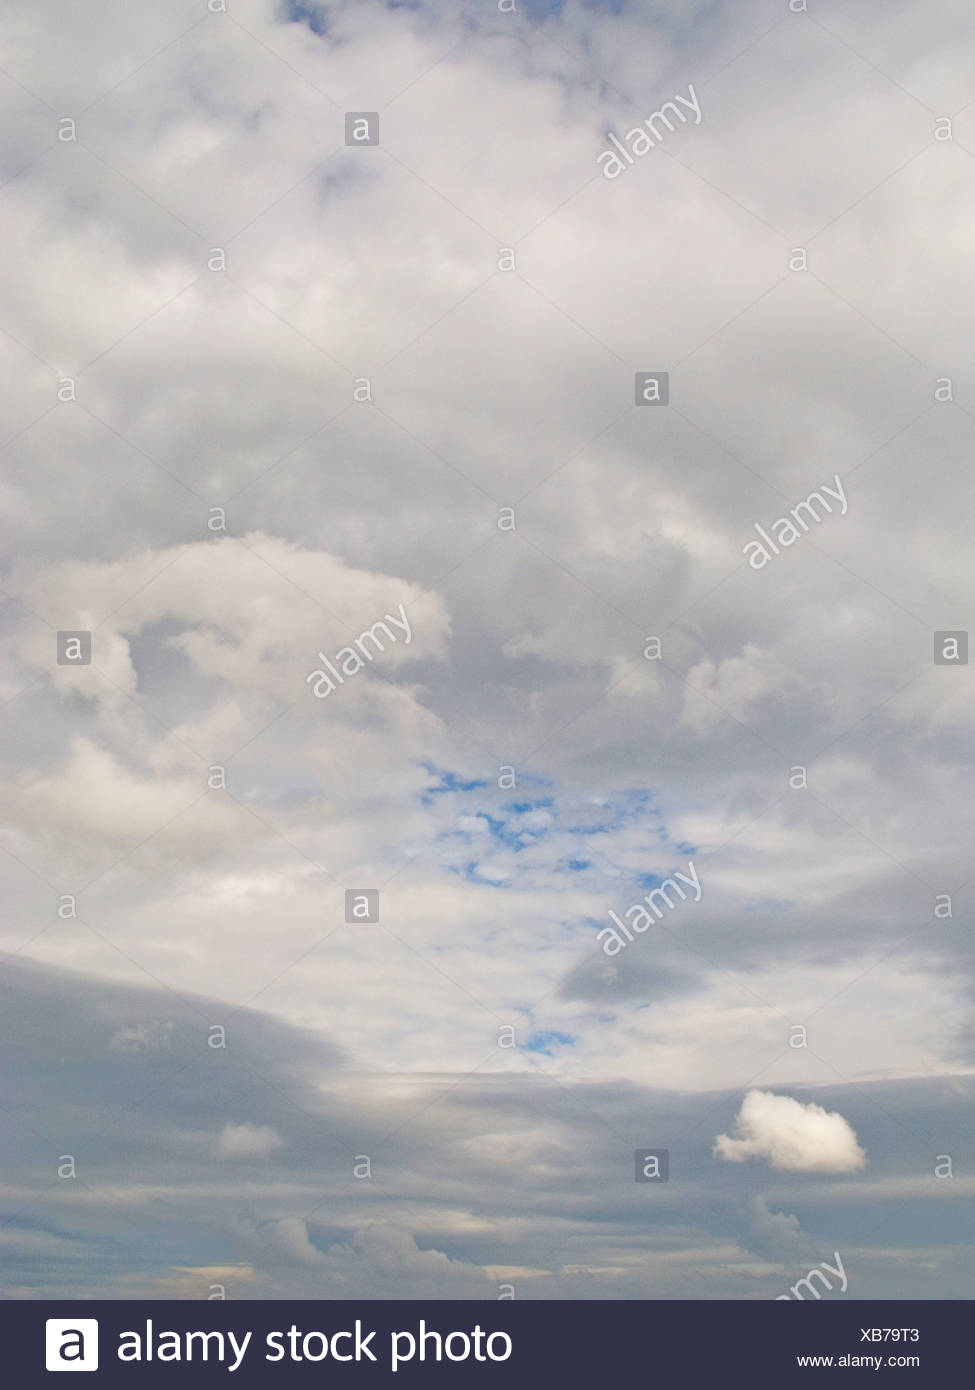 Cloud mass in sky - Stock Image